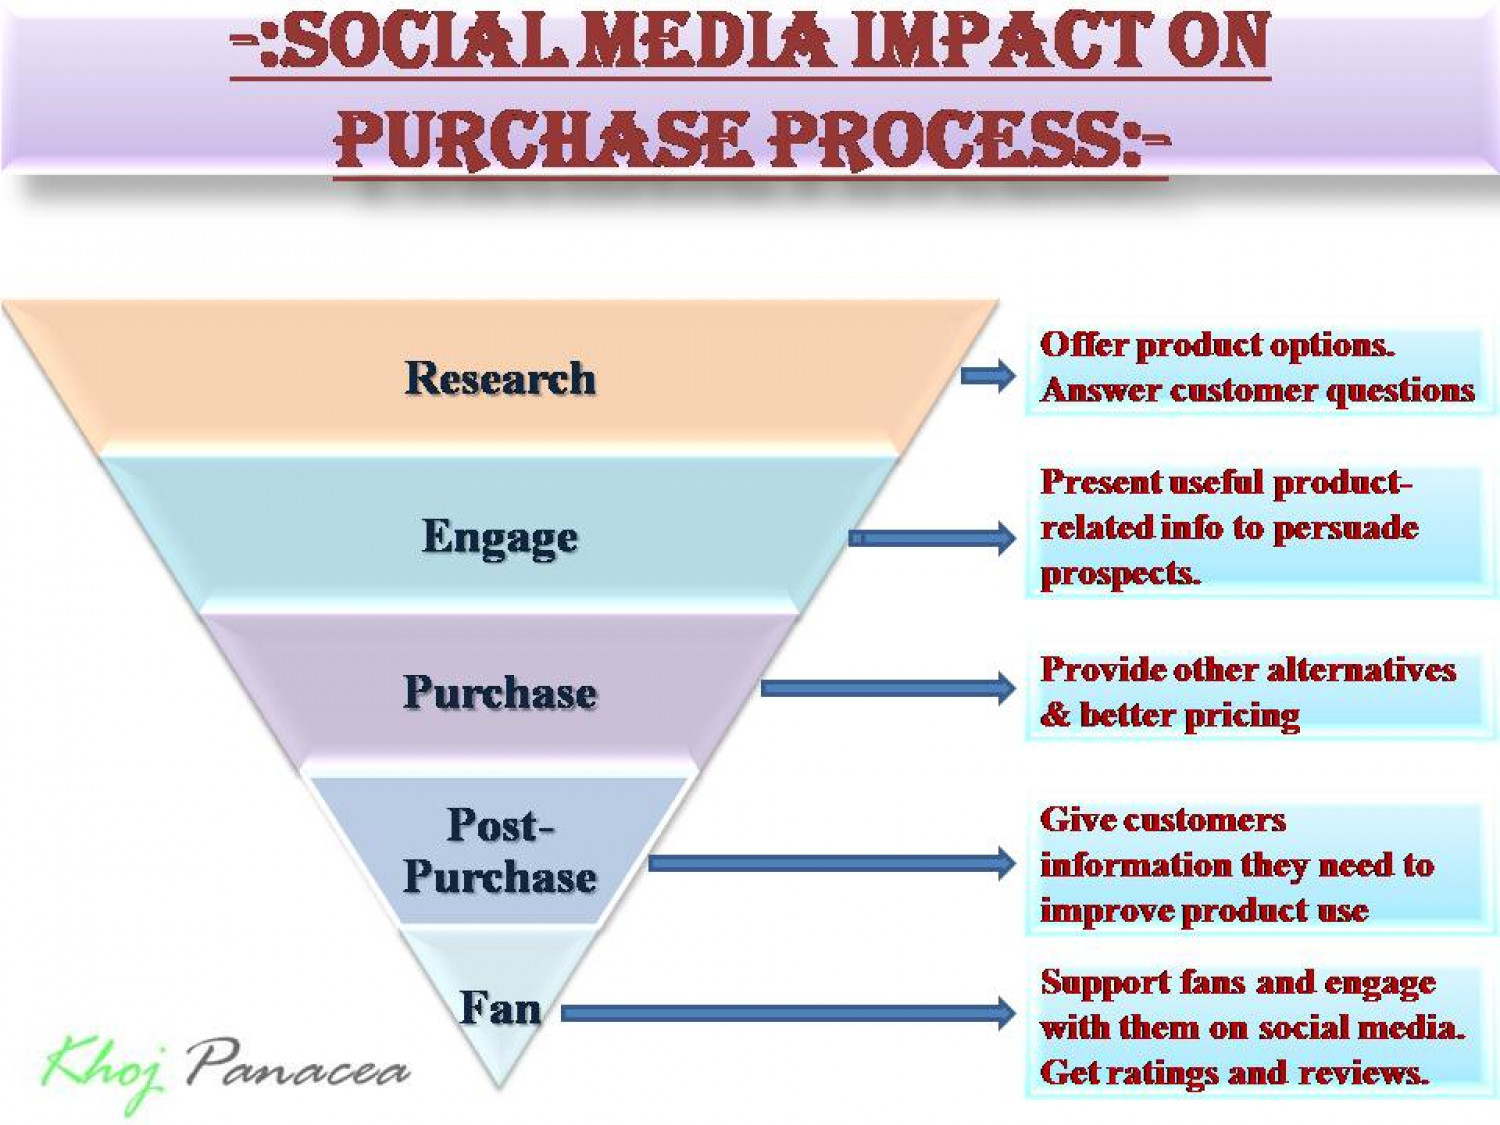 Social Media Impact on Purchase Process Infographic